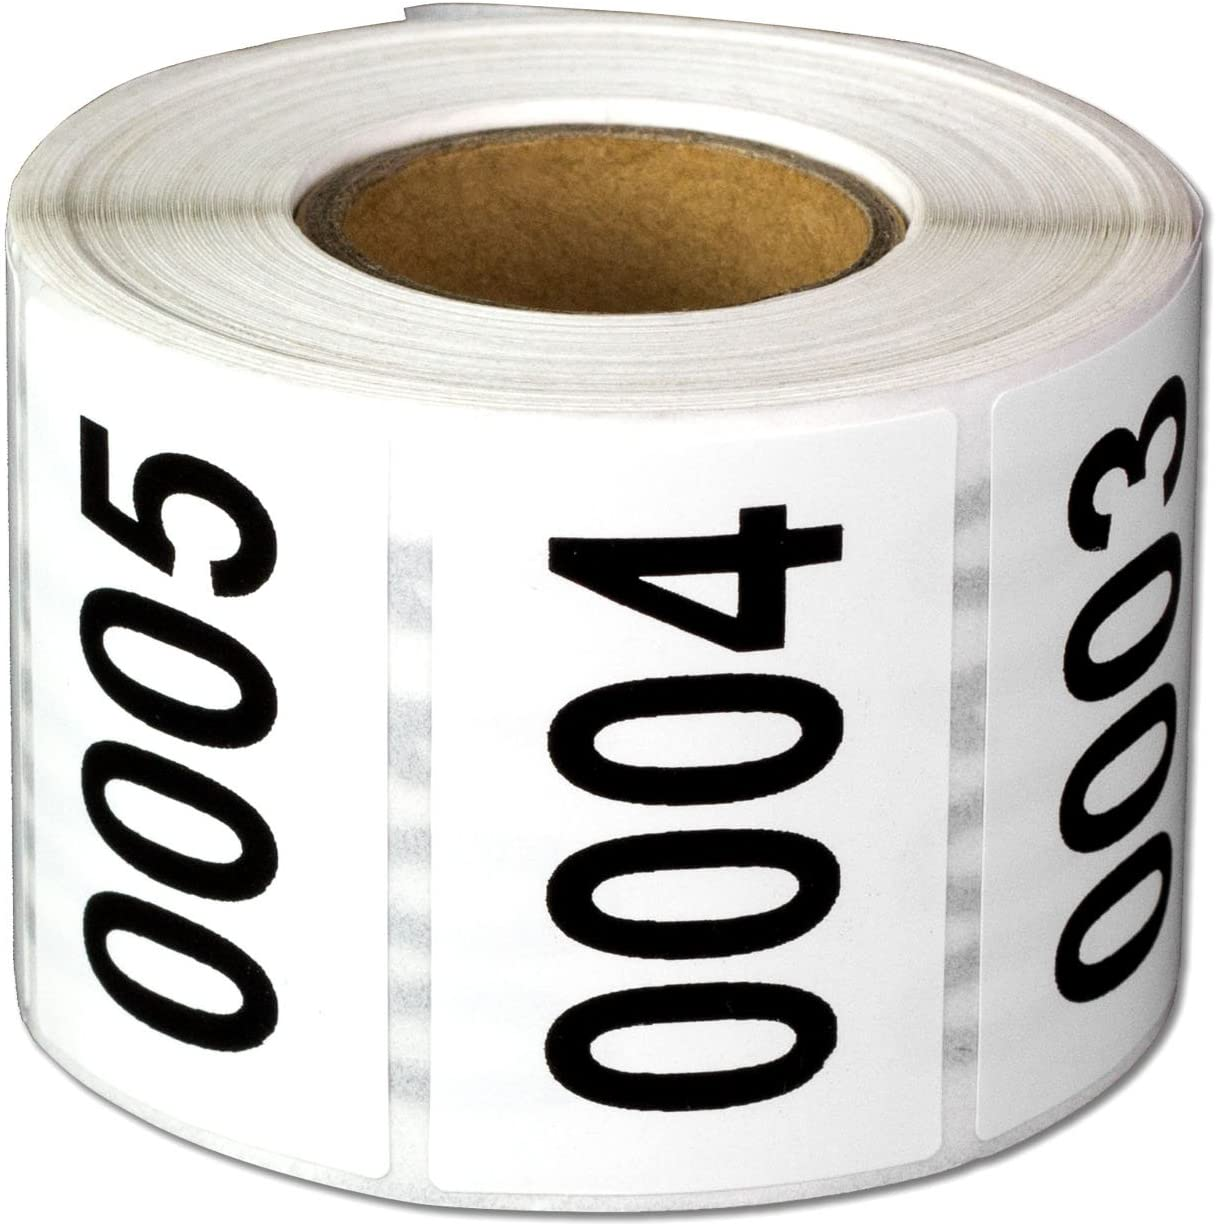 Consecutive Number Labels Self Adhesive Stickers 0001 to 0500